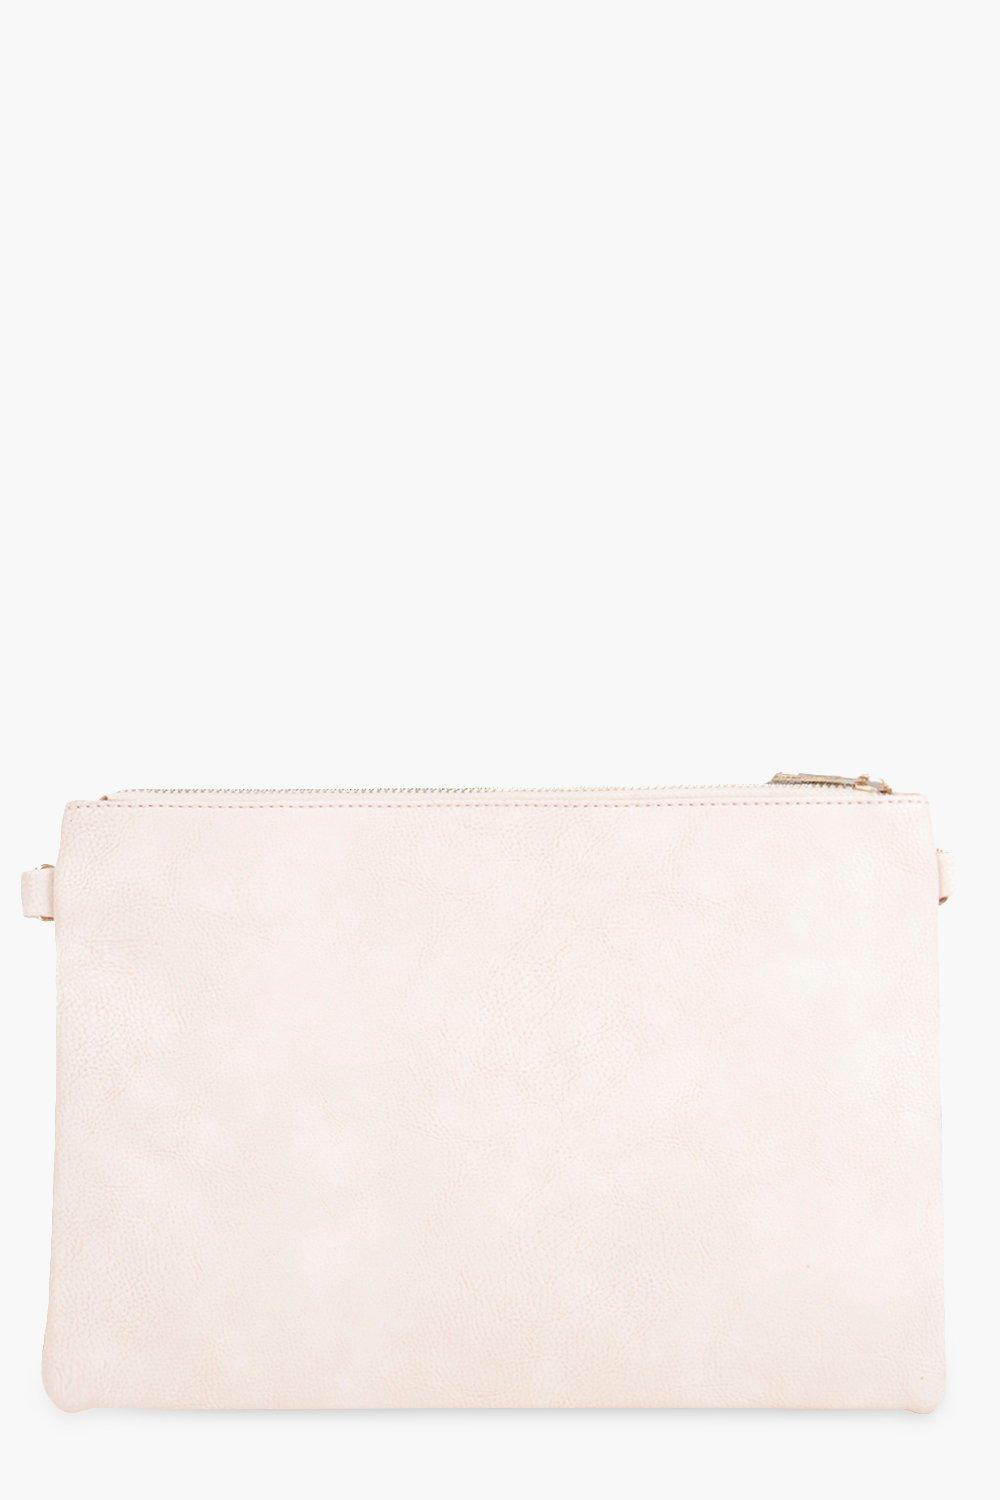 Zip Top Clutch Bag nude